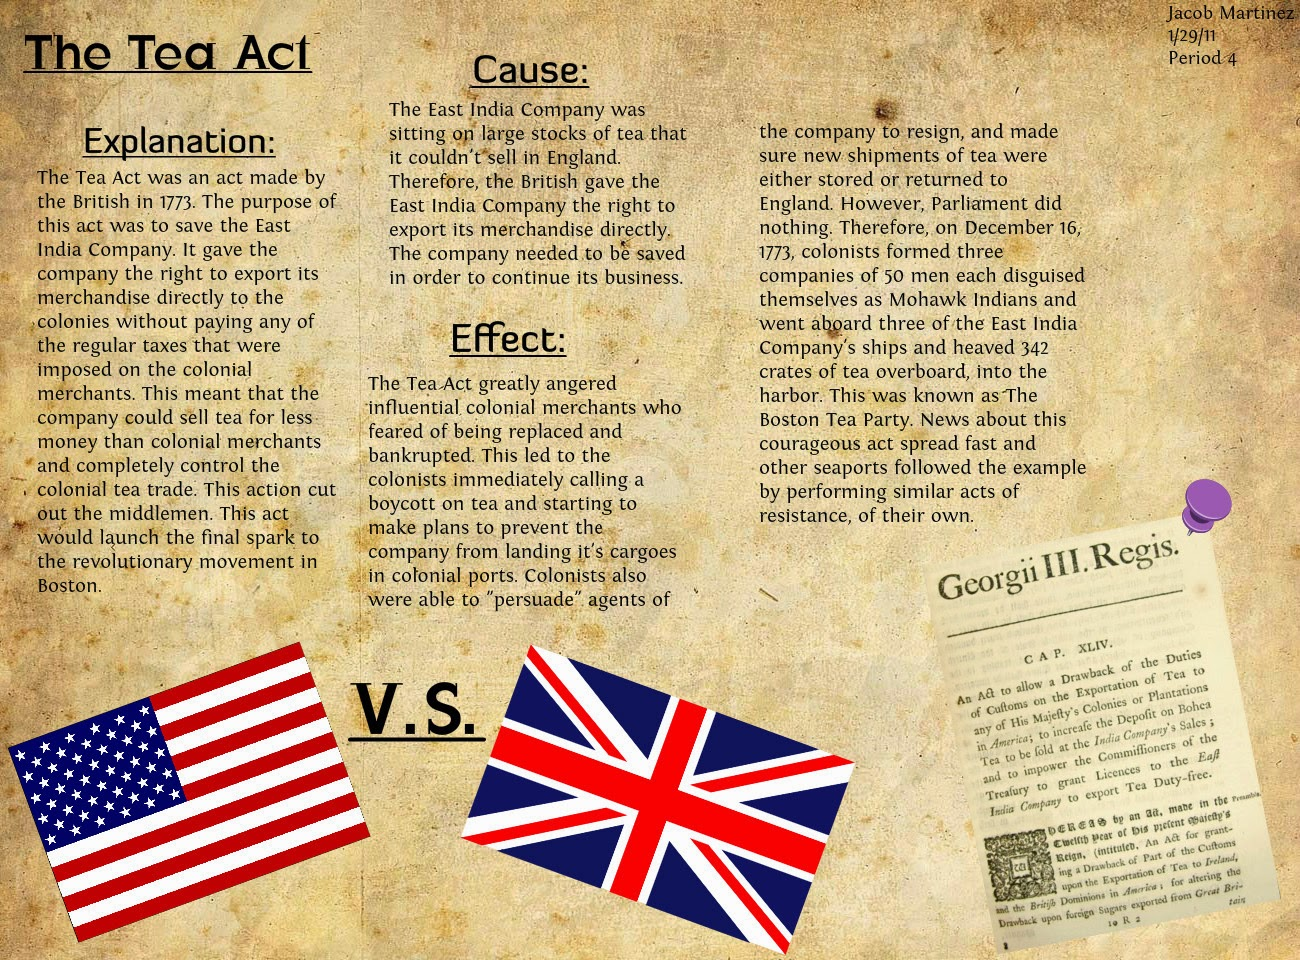 the tea act of 1773 essay The boston tea party has its roots in the tea act of 1773 the boston tea party was served as a protest against taxation on the night of december 16, 1773, samuel adams and the sons of liberty boarded three ships in the boston harbor and threw crates of tea overboard.